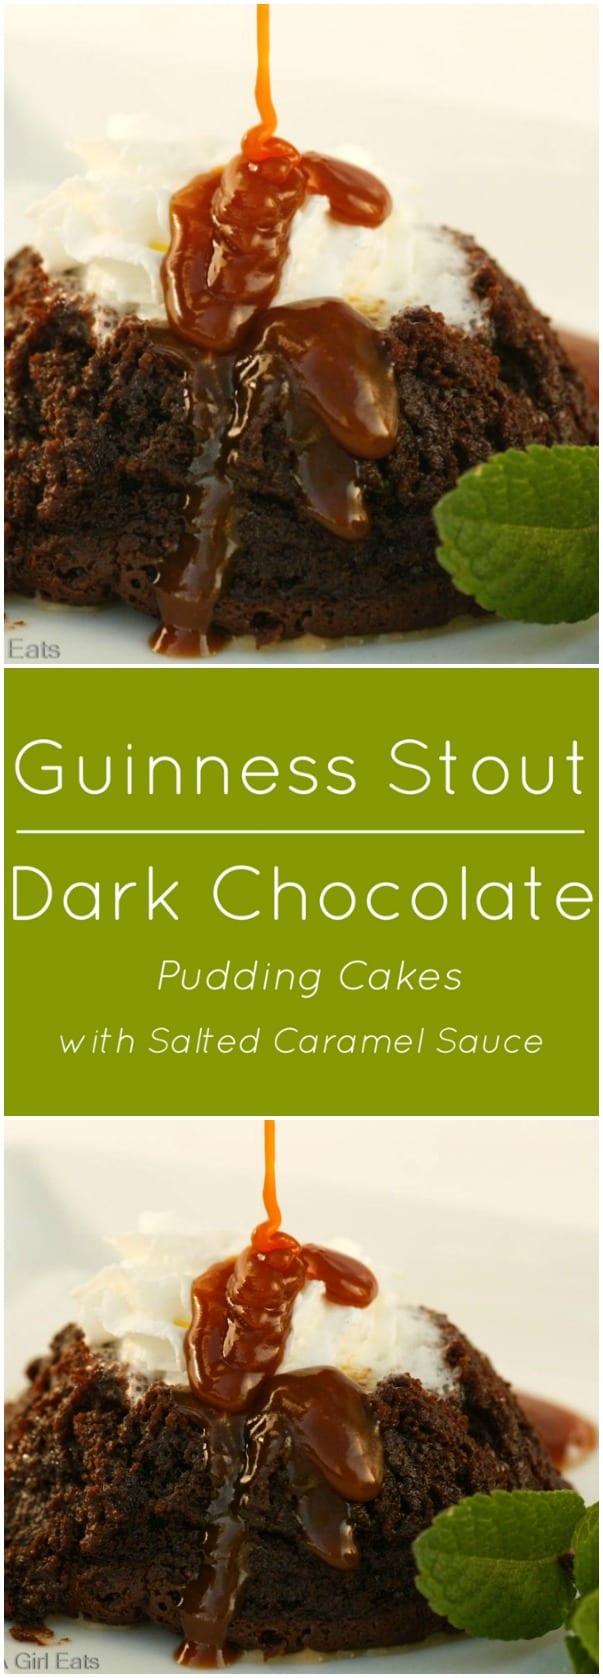 Flourless Guinness Stout dark chocolate pudding cakes with salted caramel sauce.